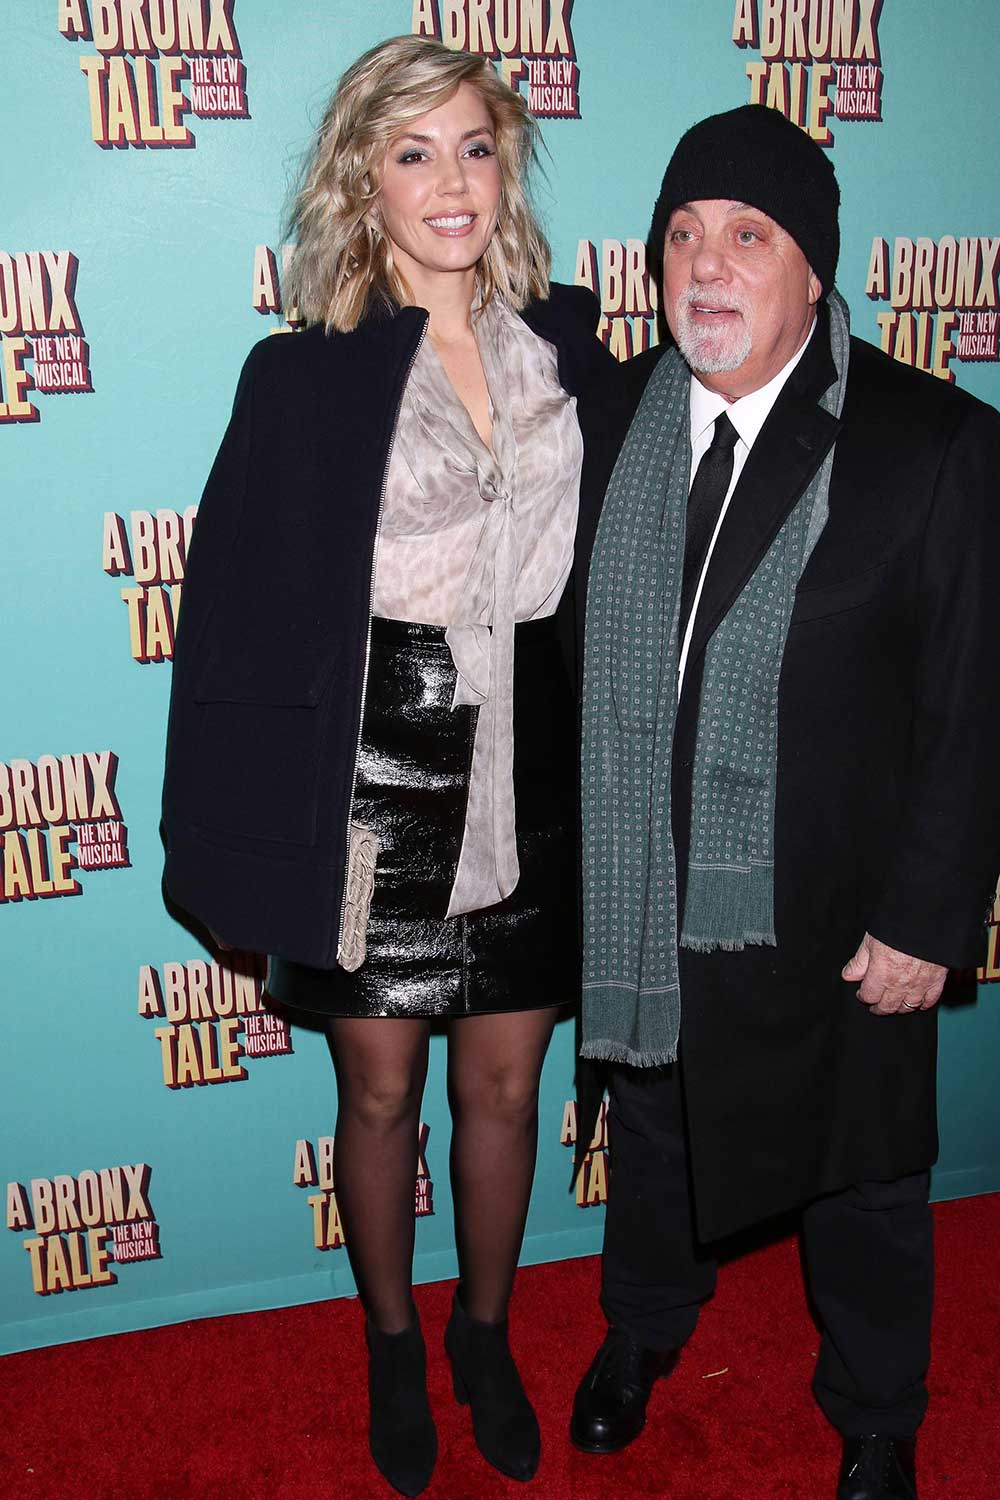 Alexis Roderick opening night of A Bronx Tale